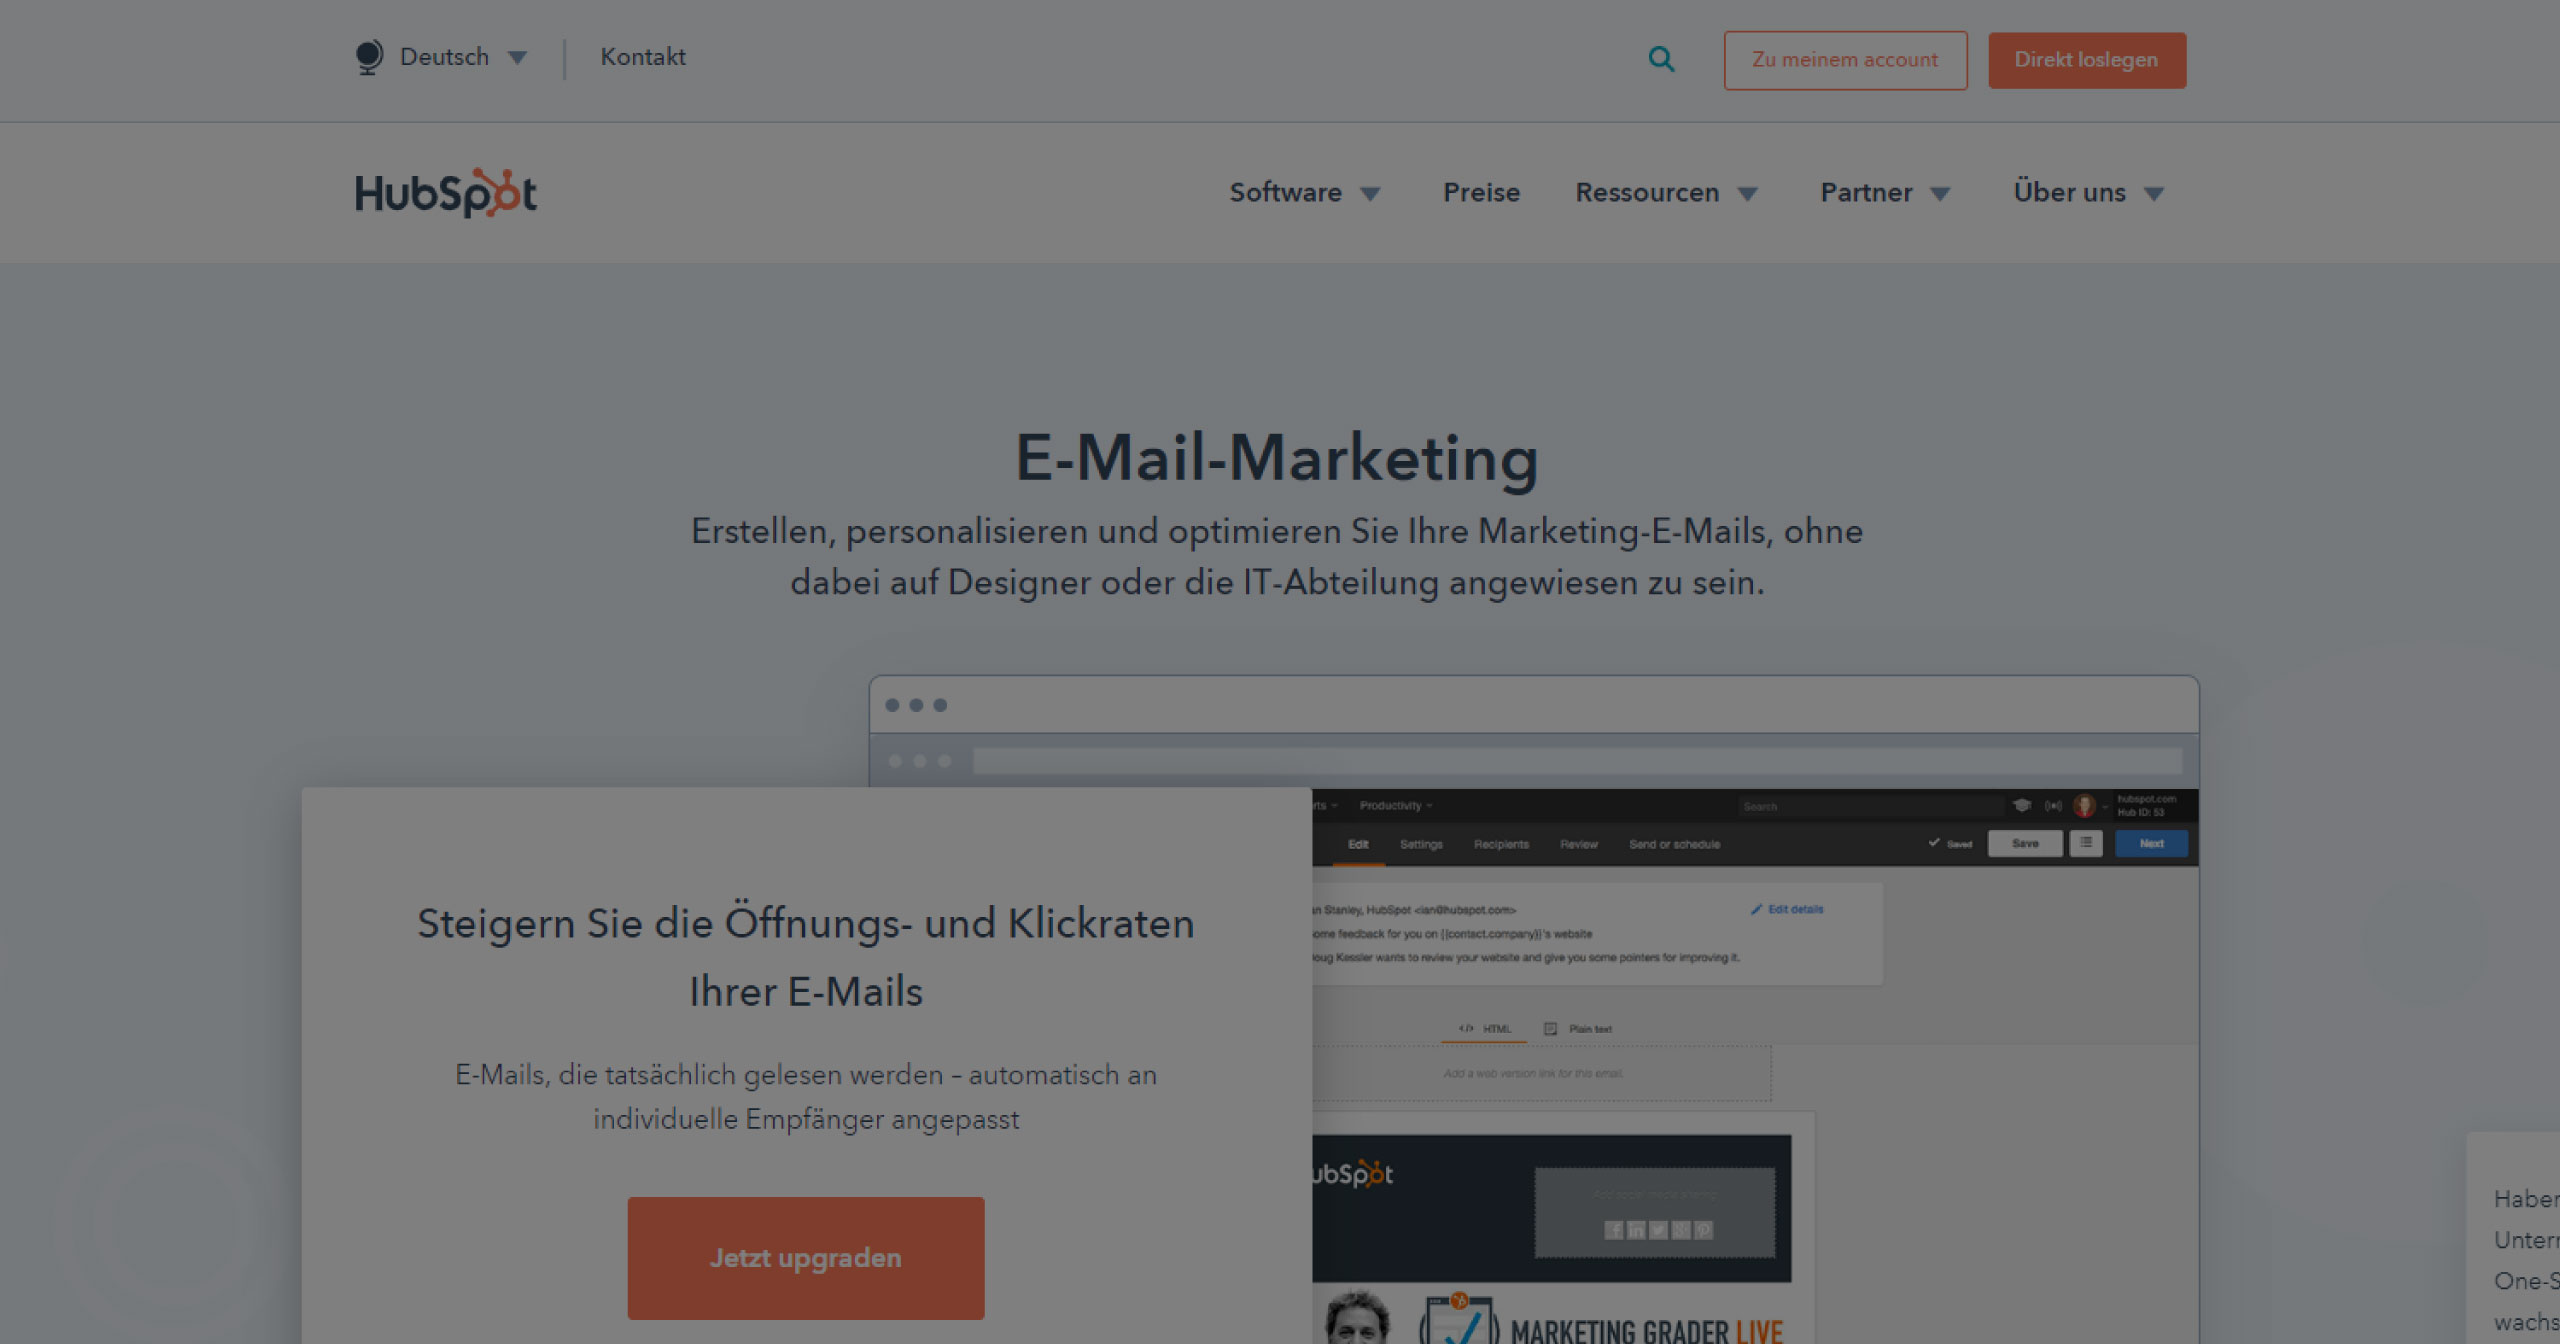 Hubspot E-Mail-Marketing | Beitragsbild